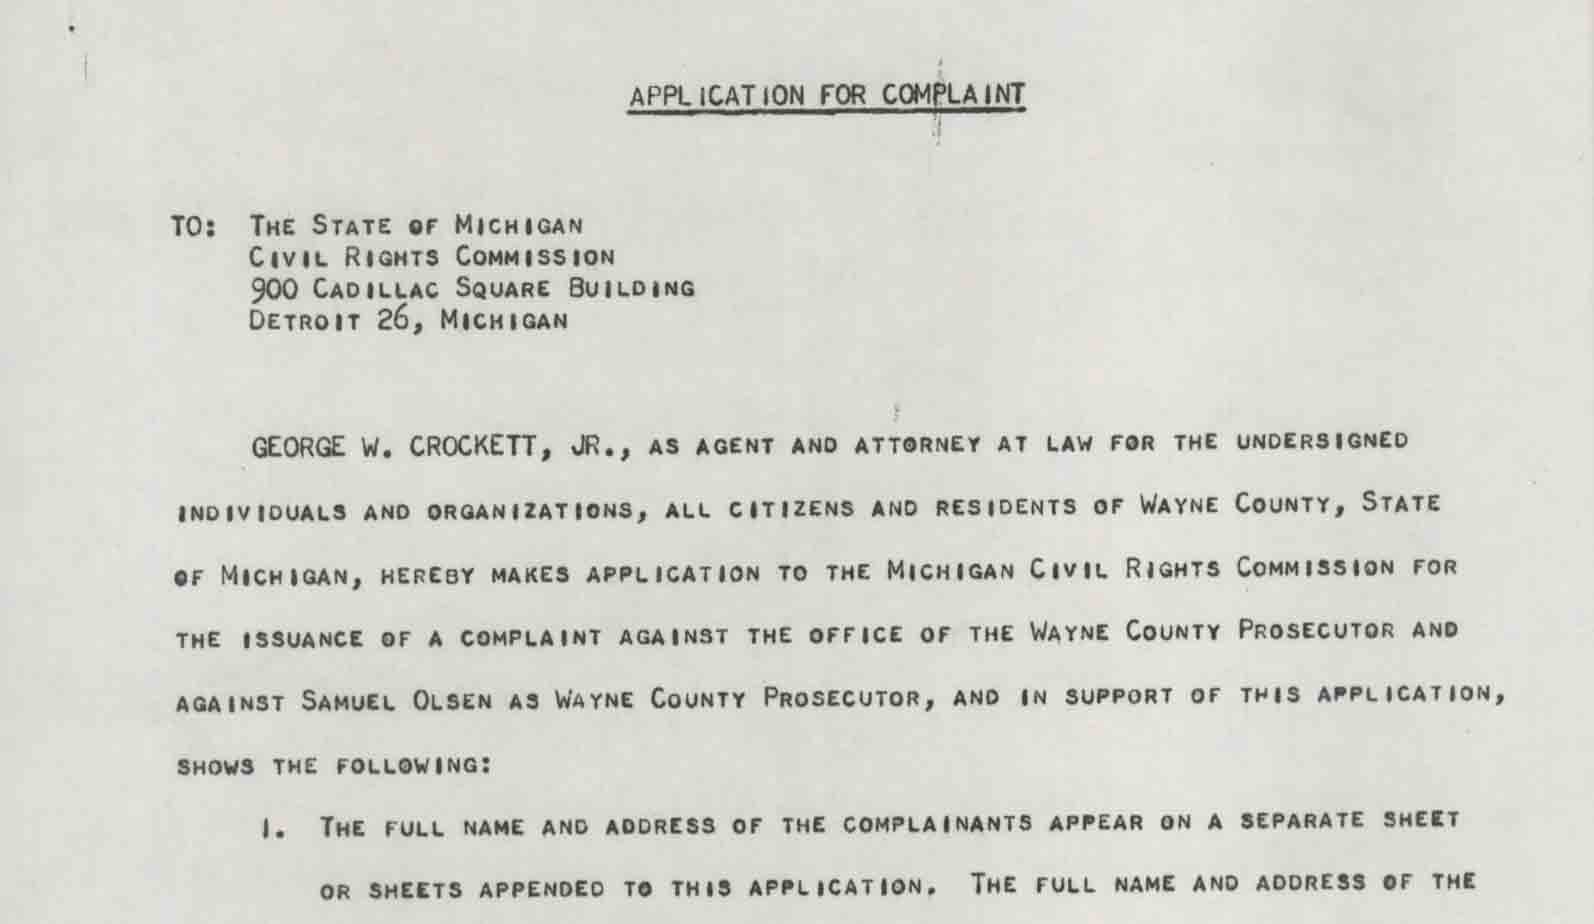 Application for Complaint, State of Michigan Civil Rights Commission